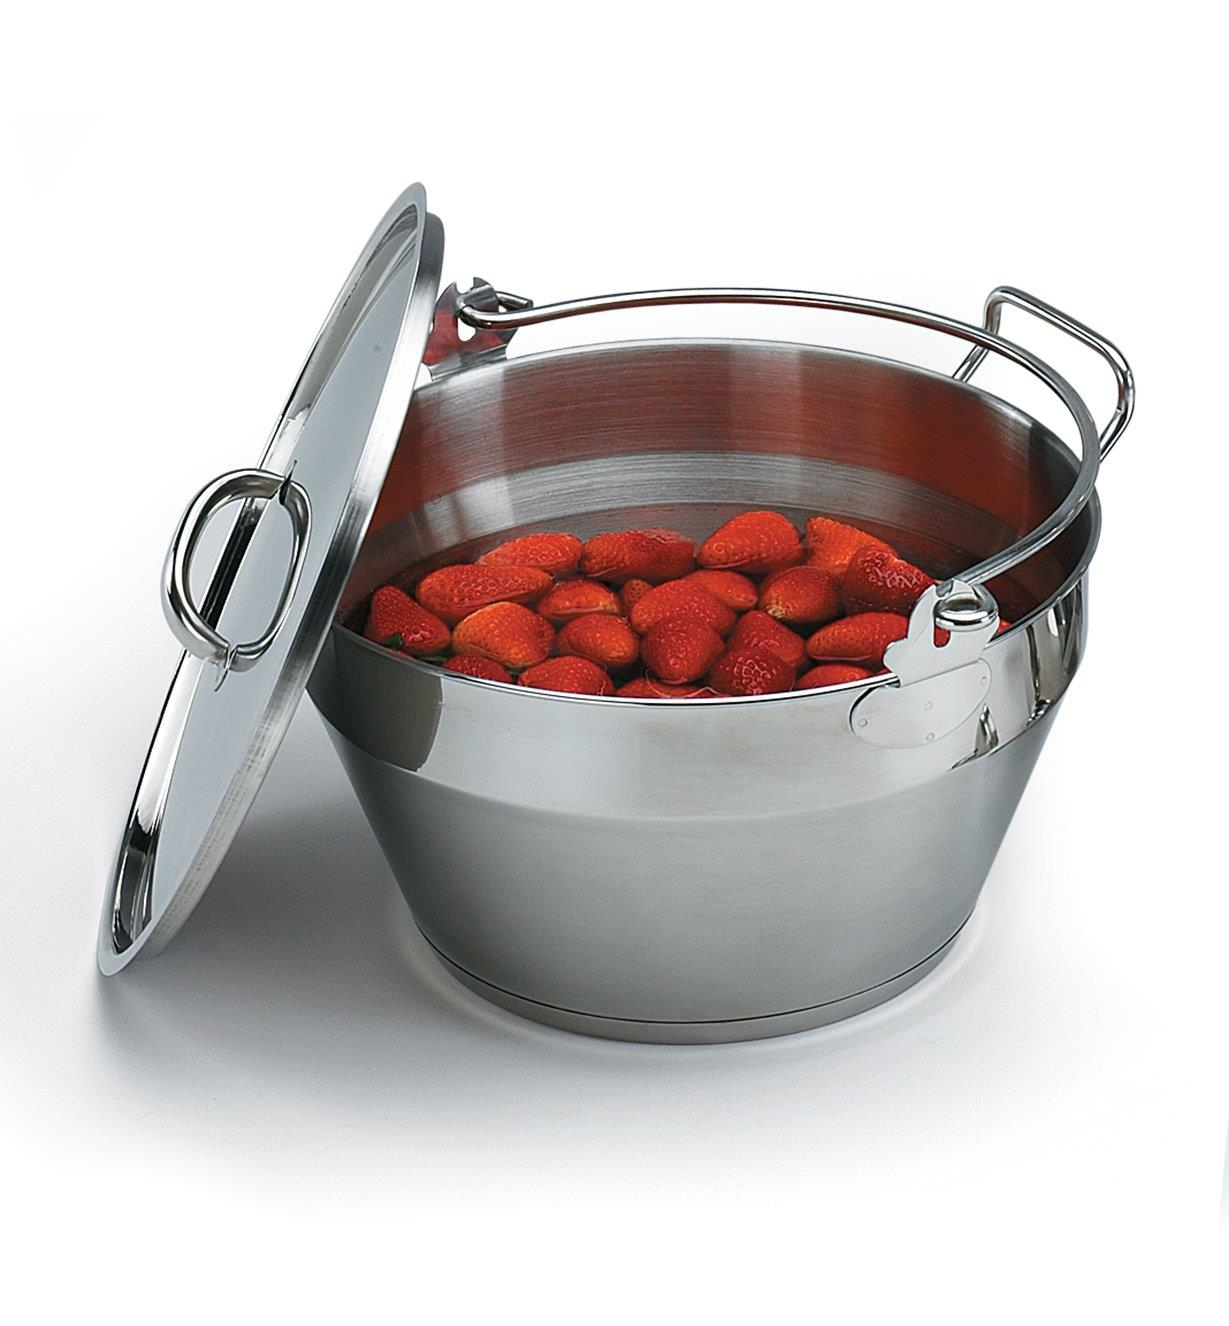 EV269 - Maslin Pan with Lid